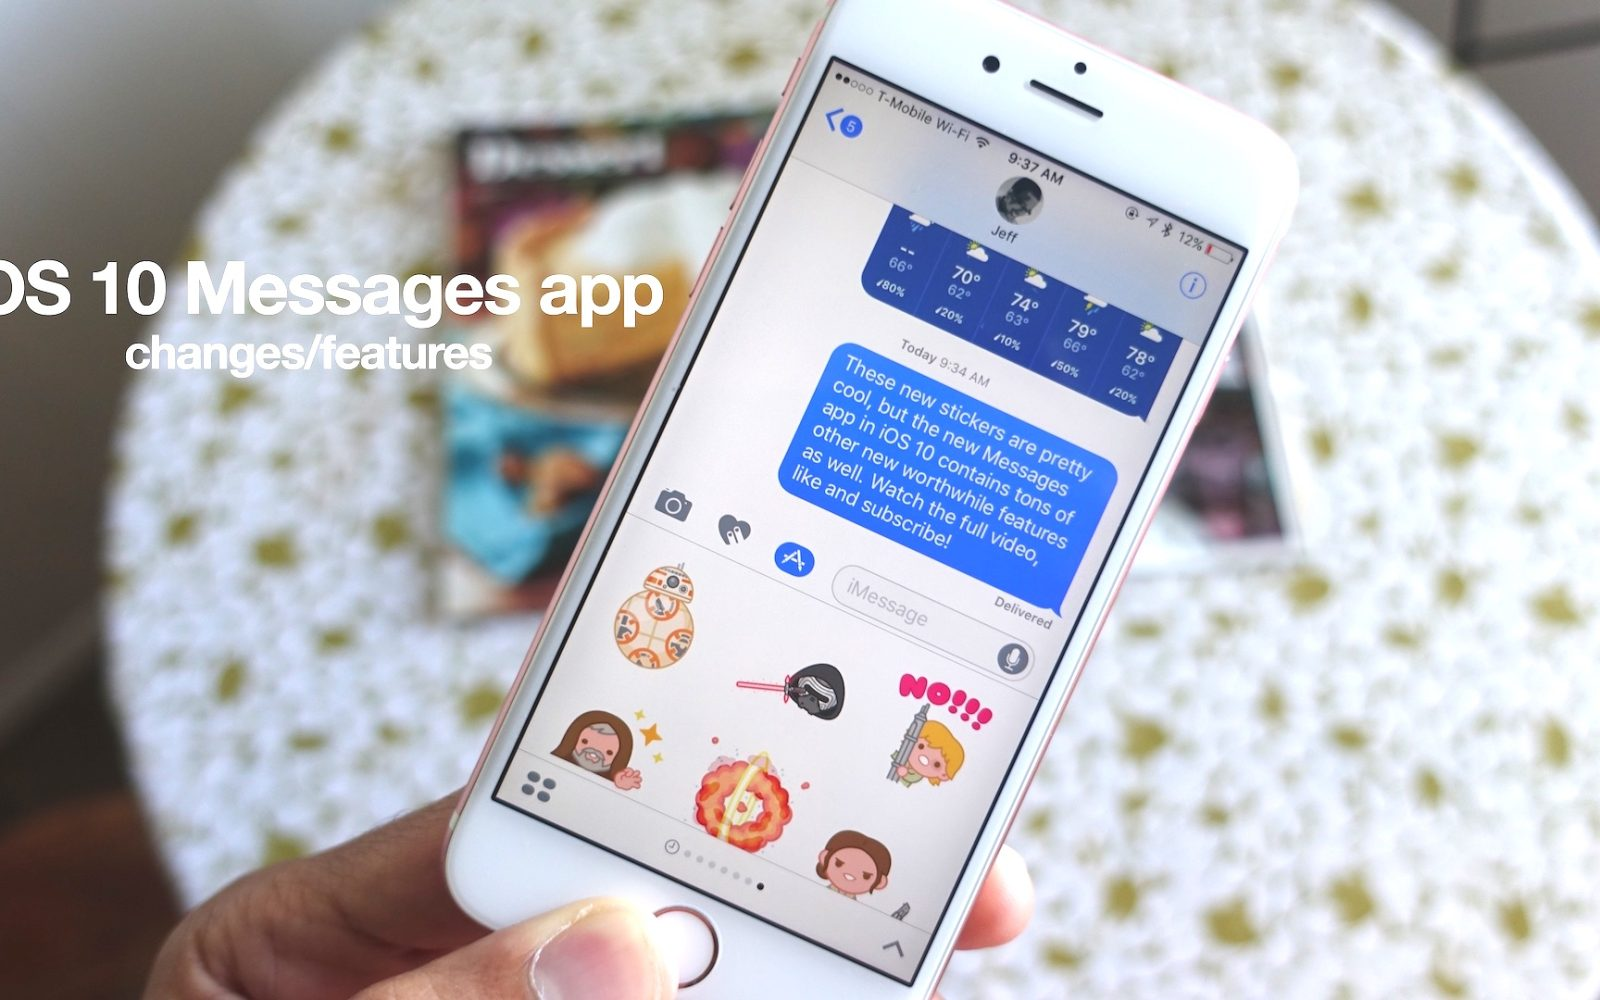 Ios 10 How To Use Stickers Imessages Apps Digital Touch Rich Opinions On Electronics Links And More In The New Messages App Video